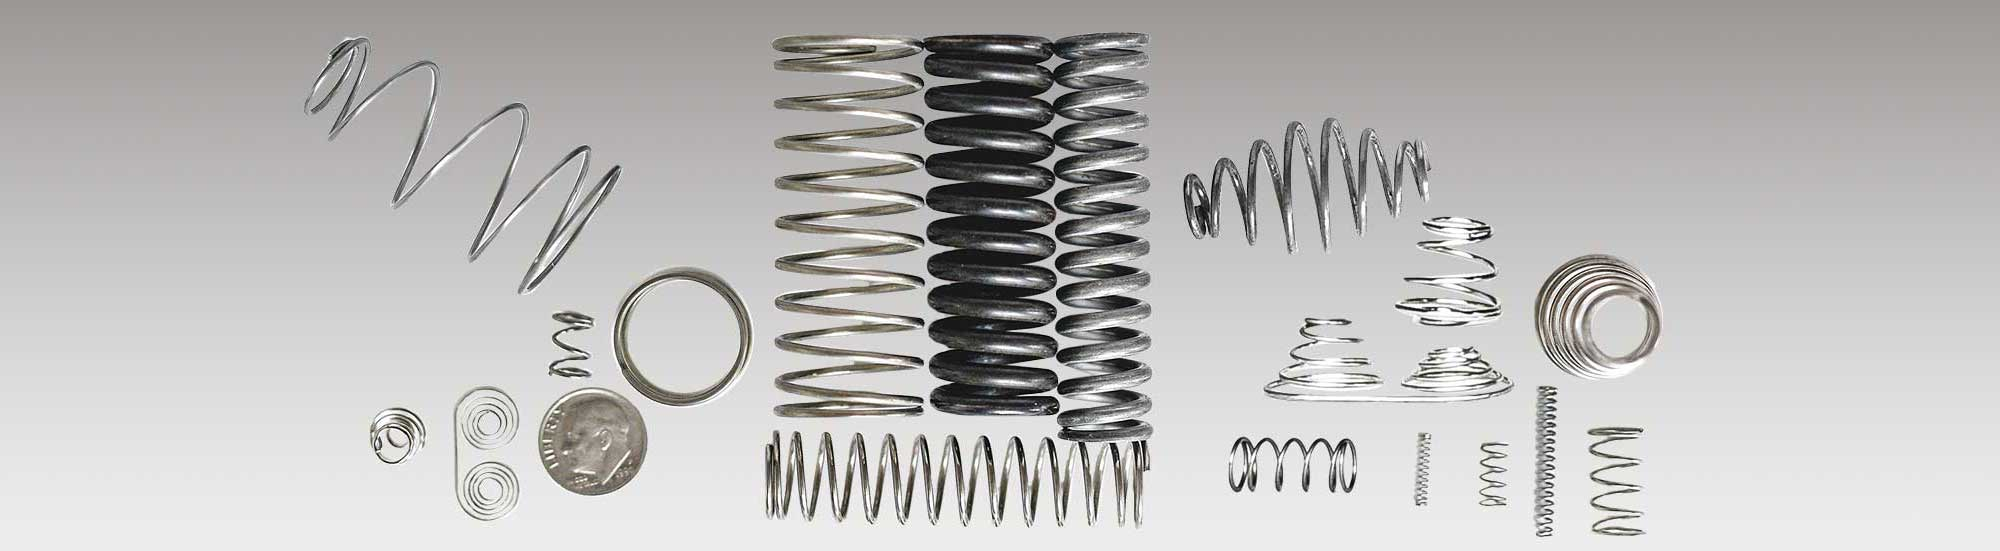 Springs Wire Forms